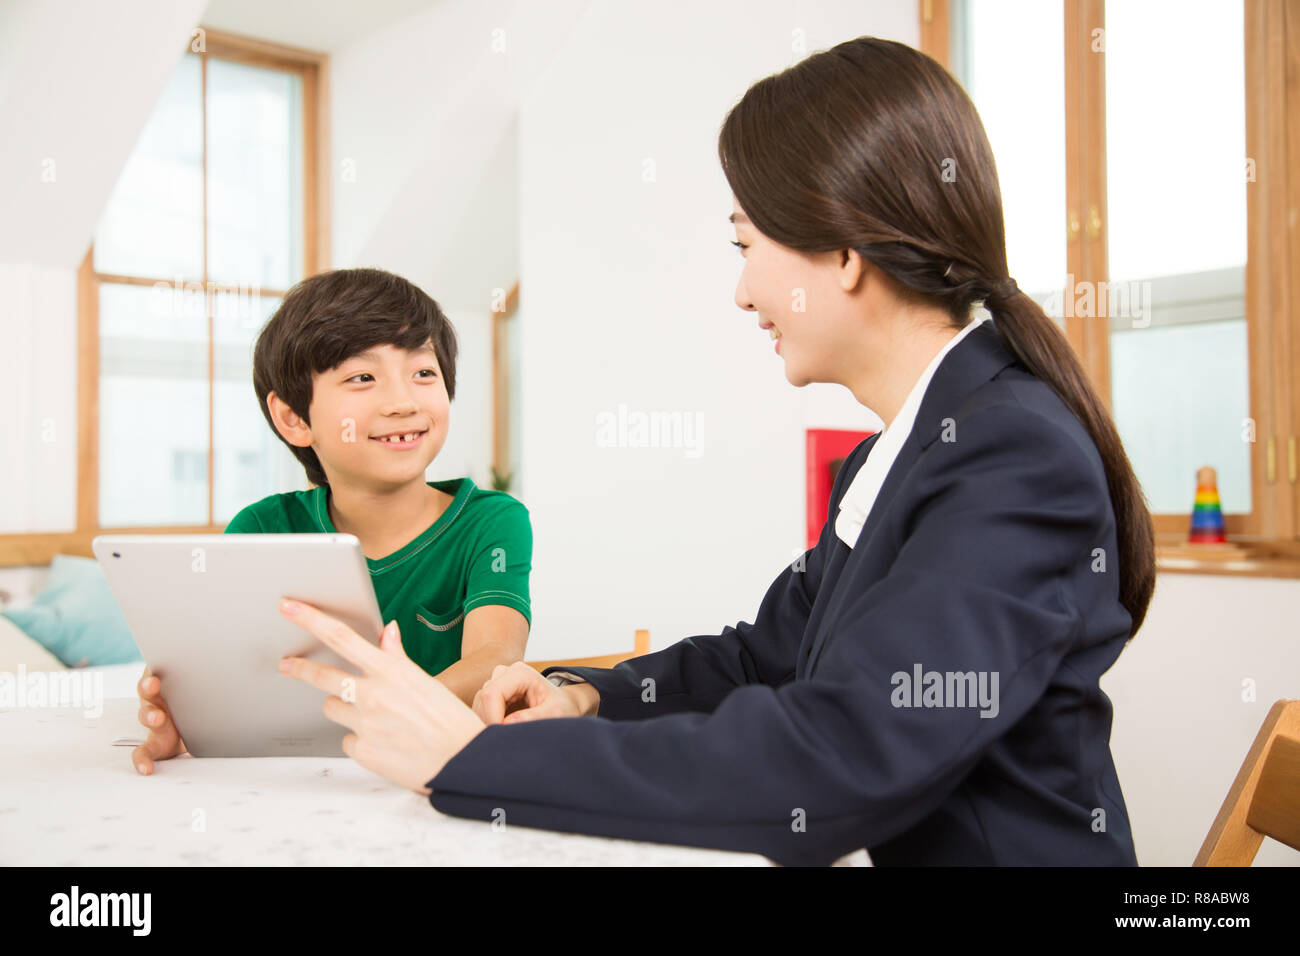 Young Student And A Female Teacher - Stock Image